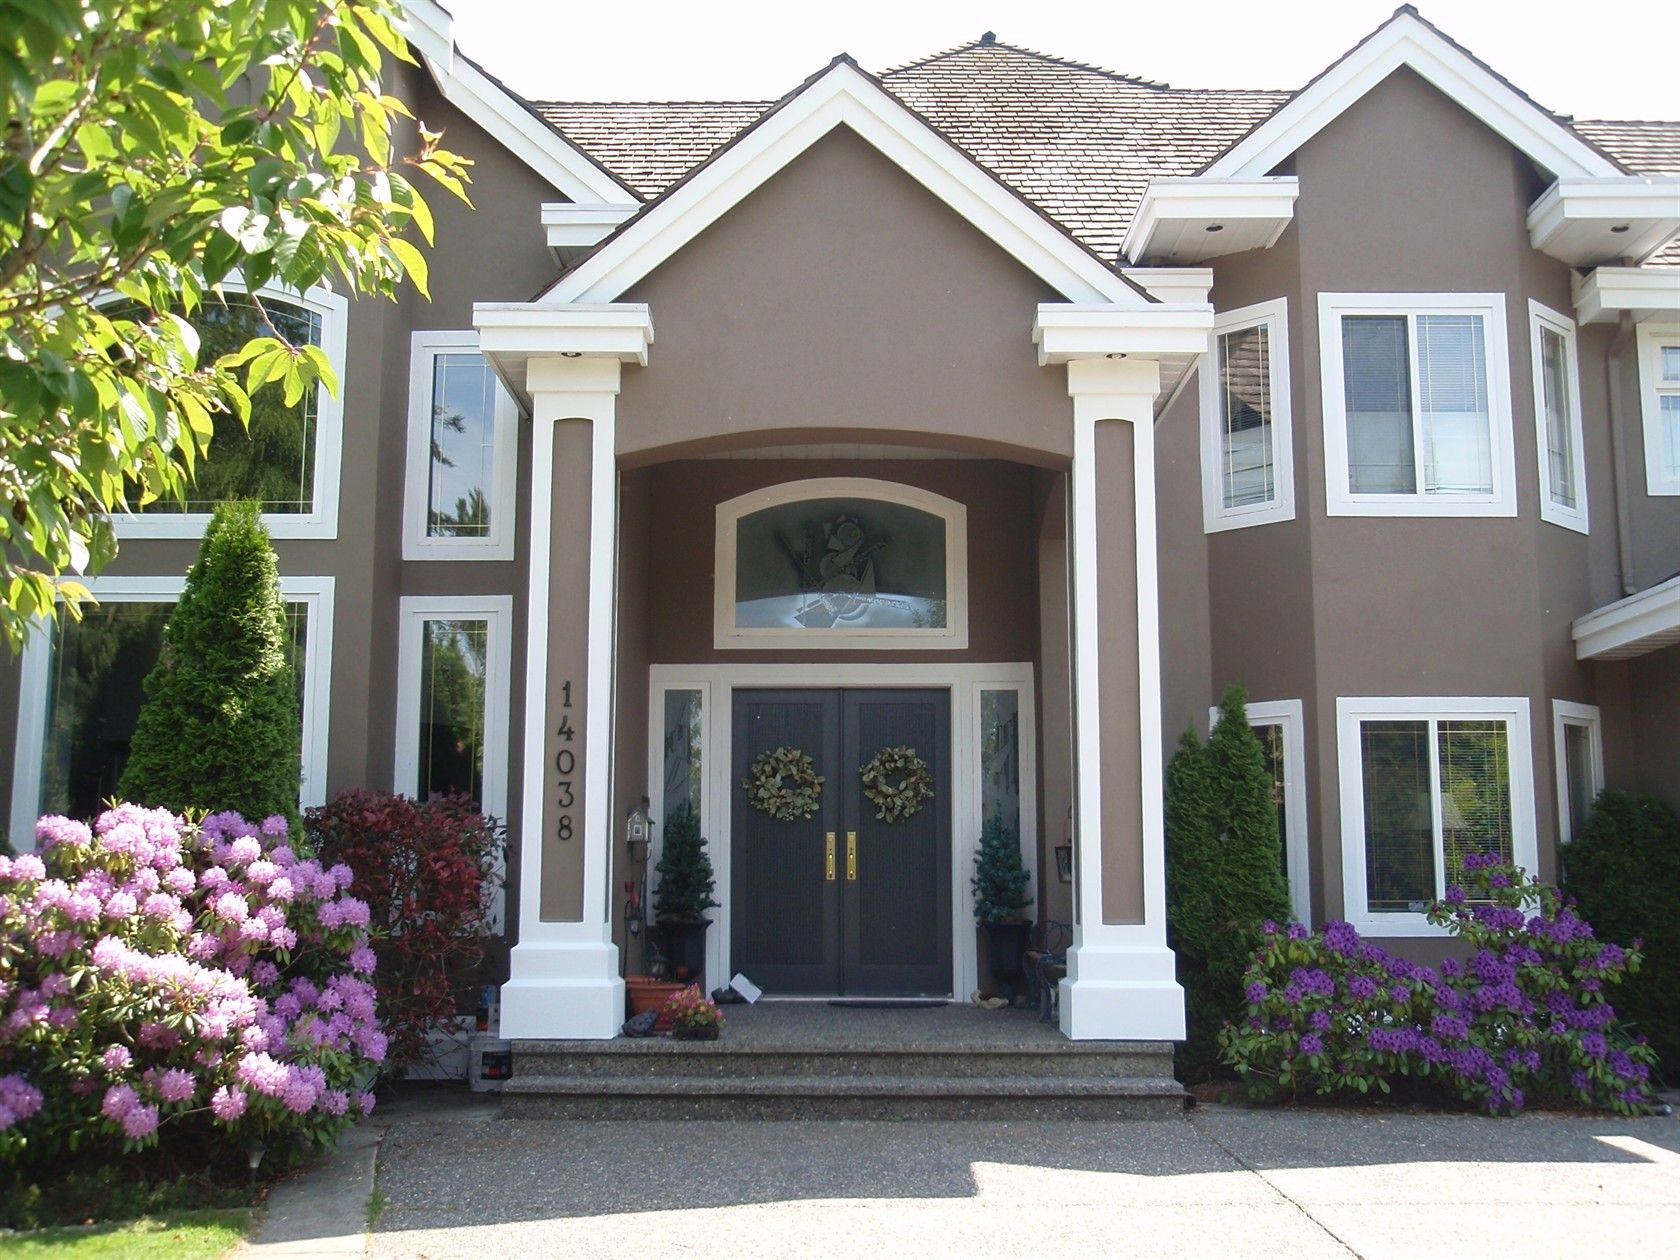 Awesome Paint Colors For House Exterior Gray Brown For Main Color Largest Home Design Picture Inspirations Pitcheantrous